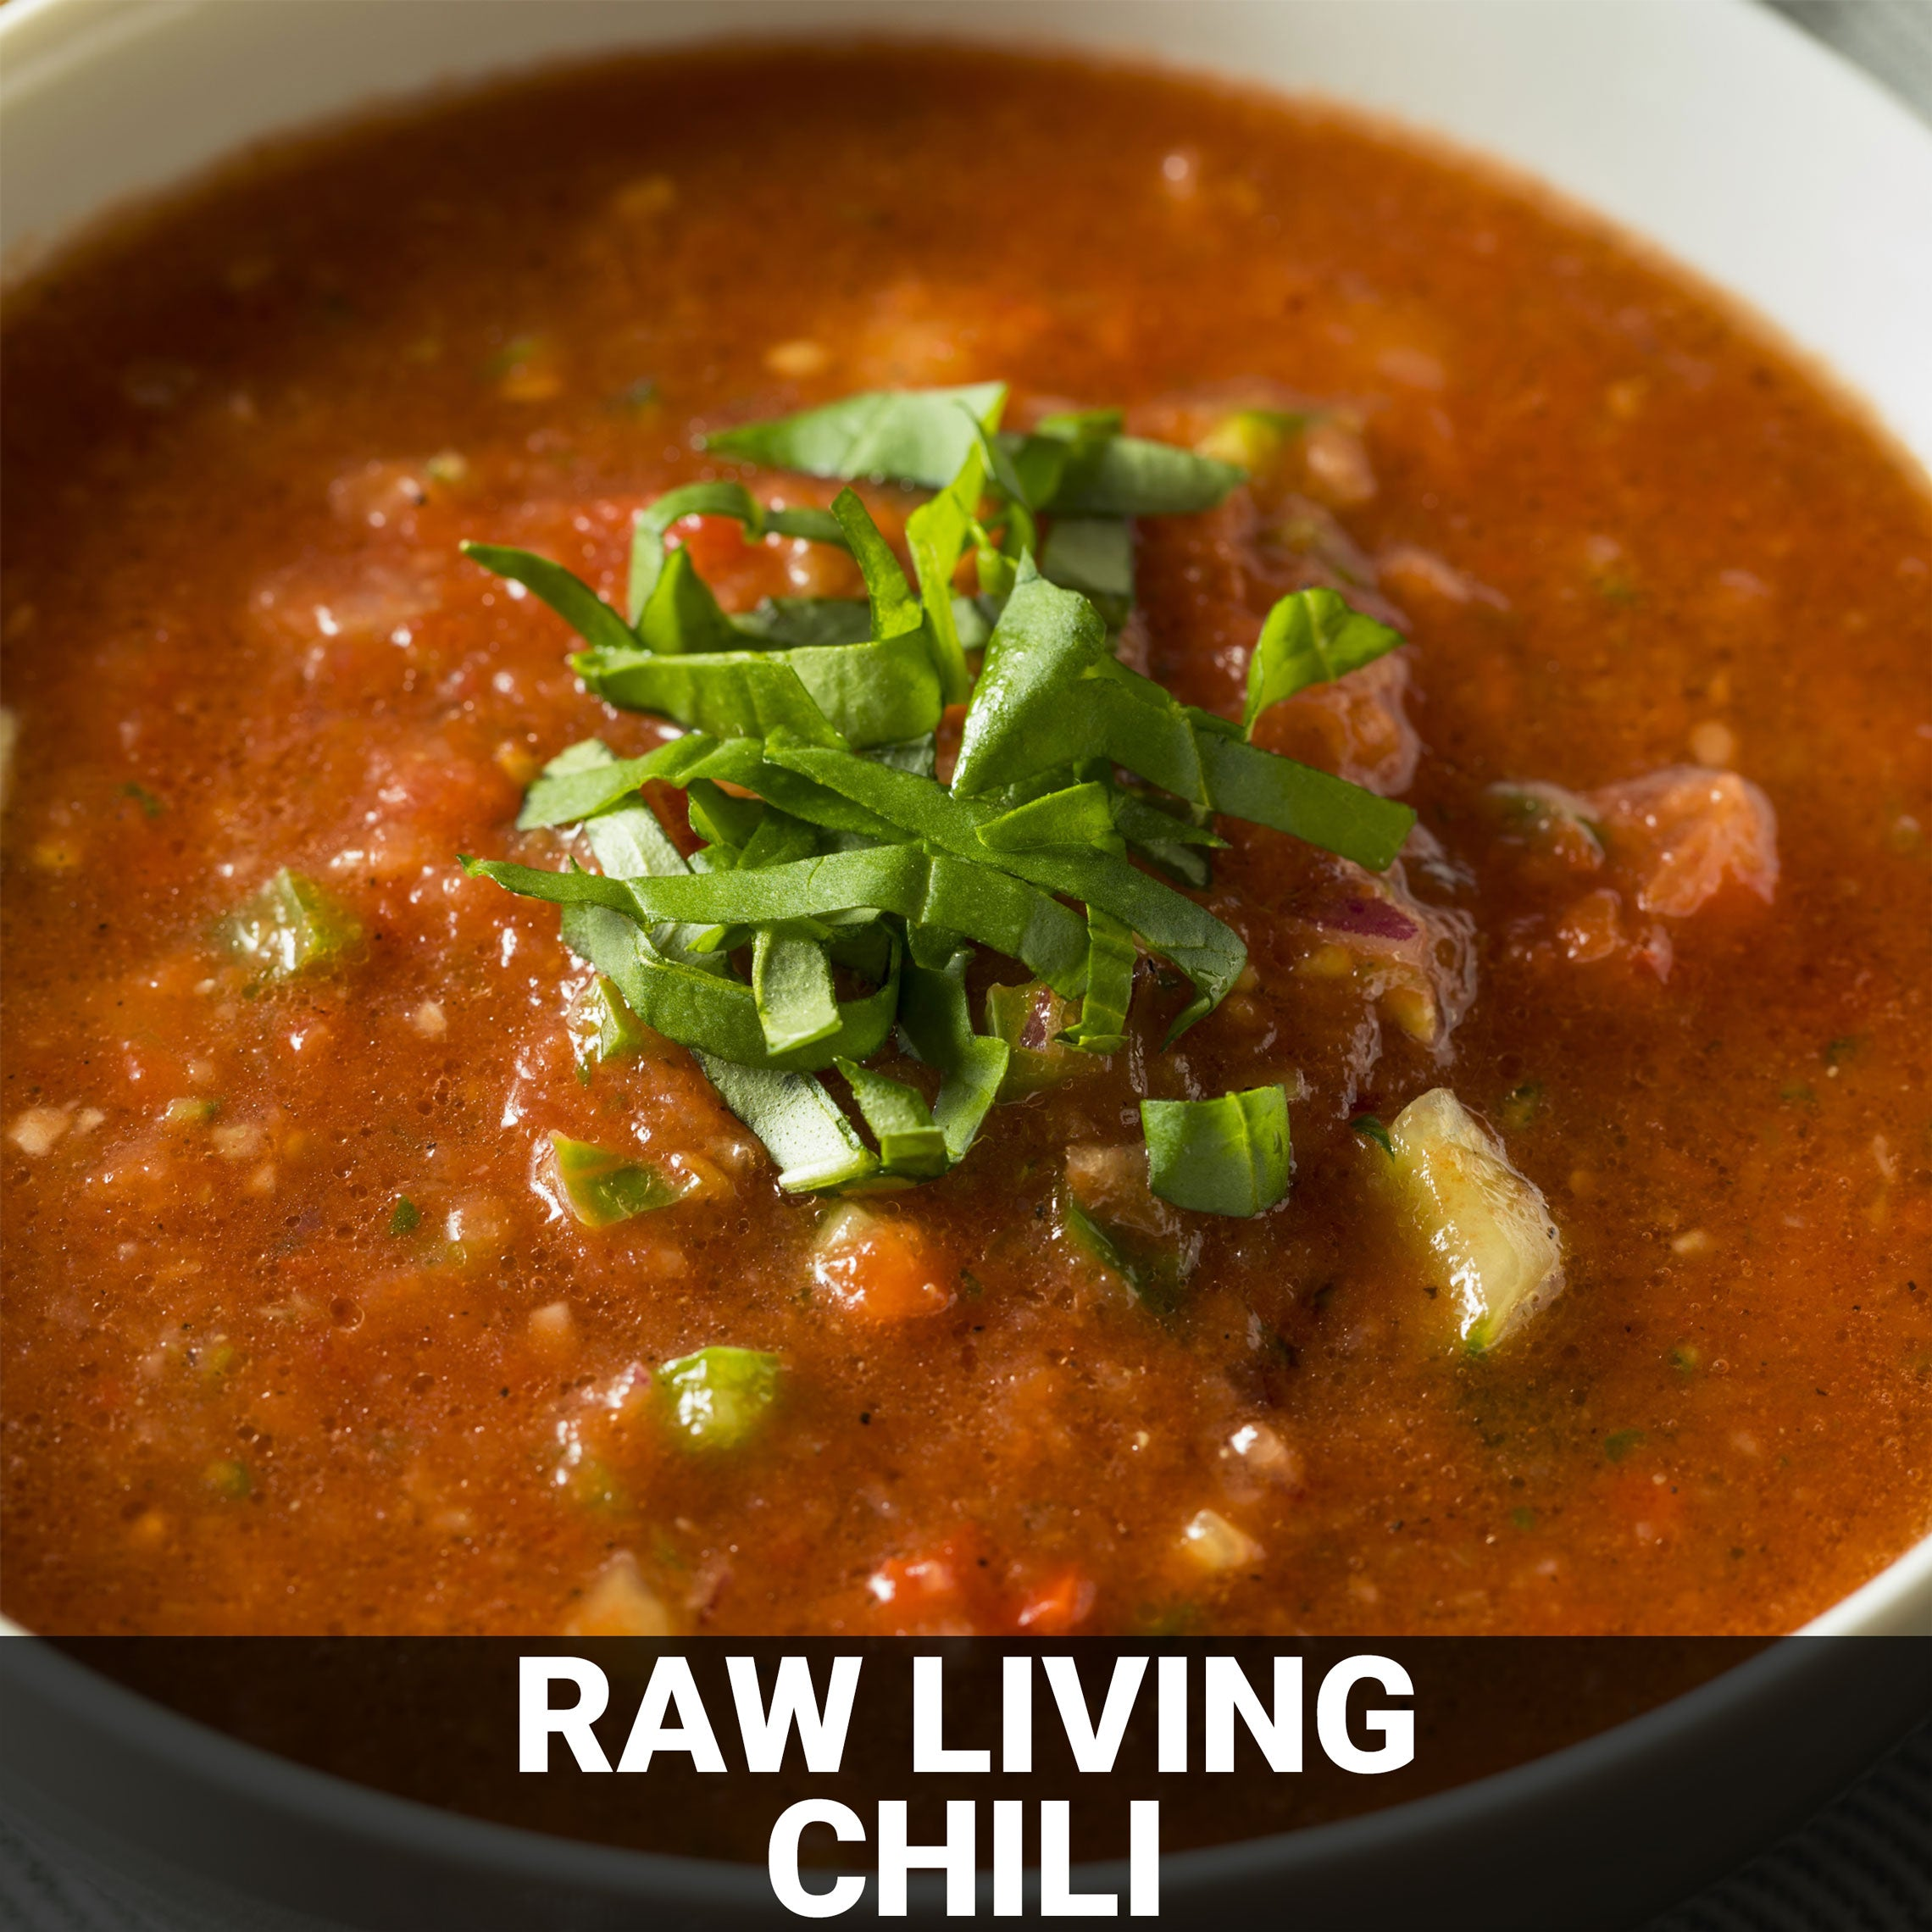 Raw Living Chili Recipe - Foods Alive